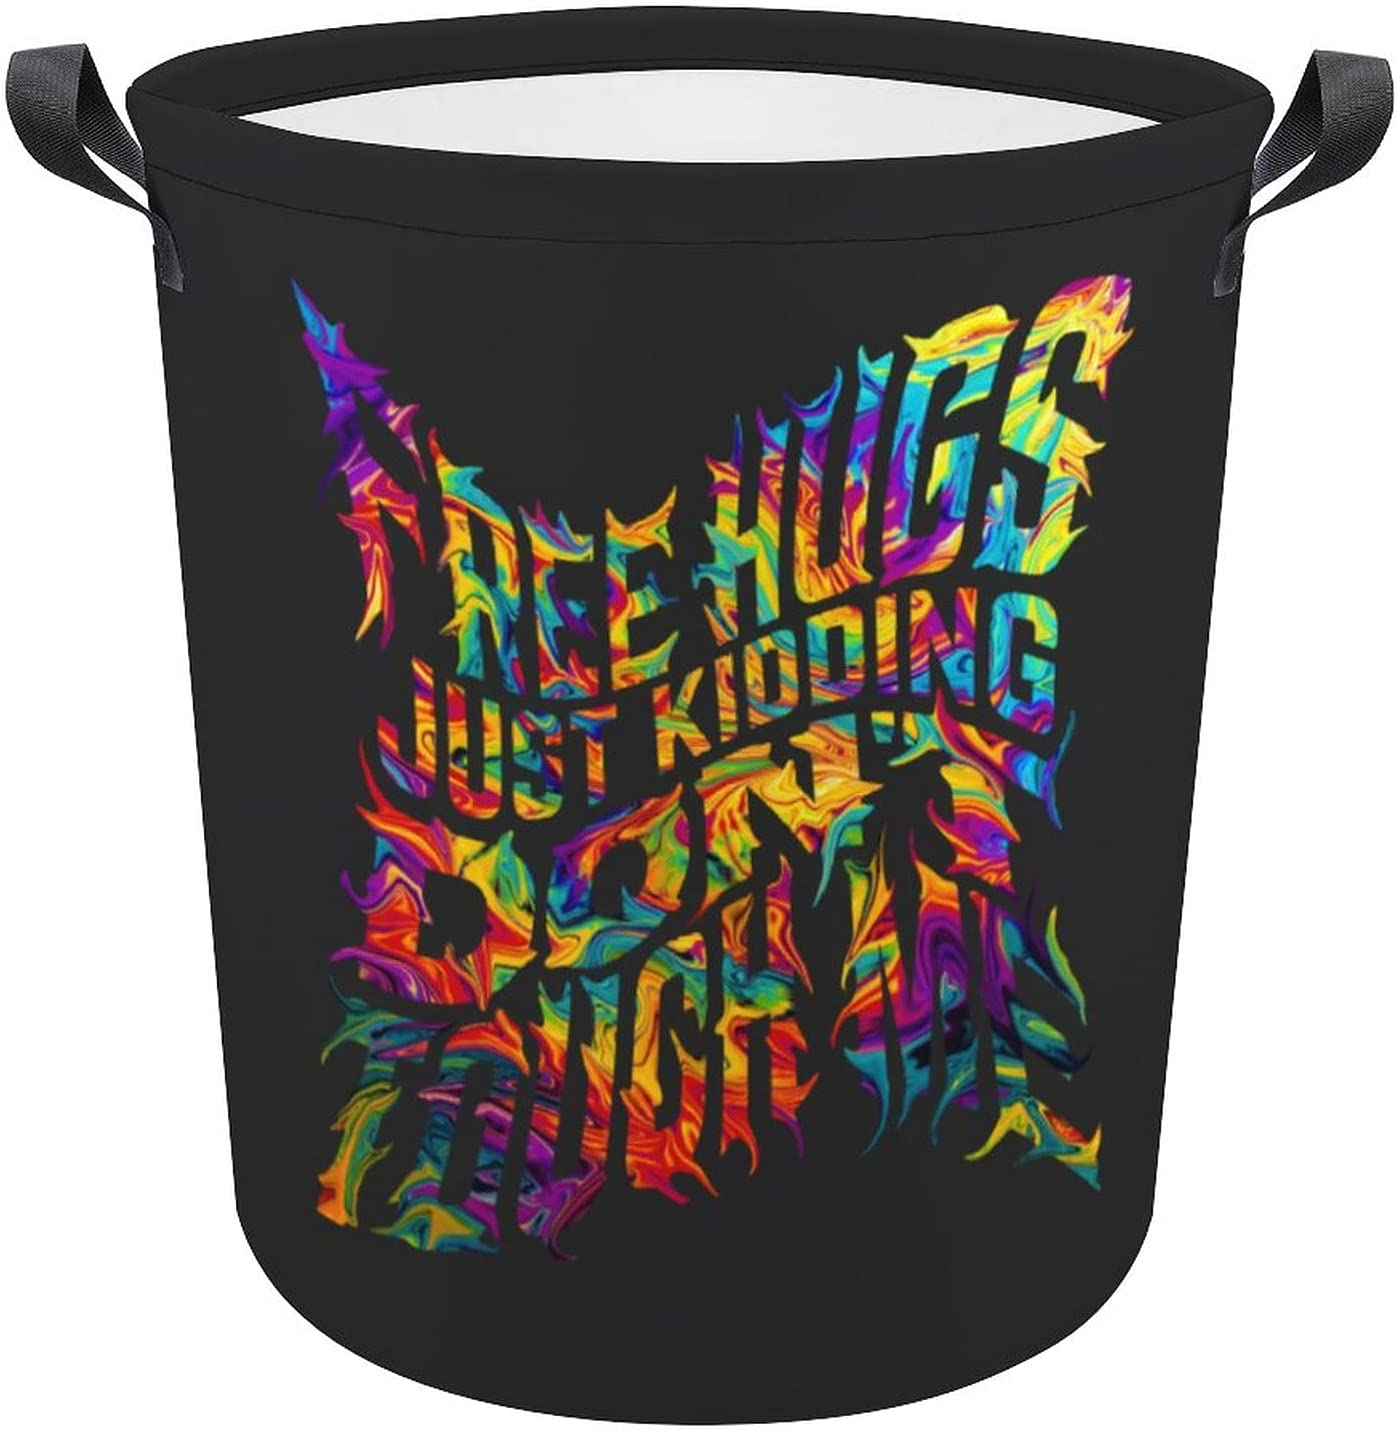 Free Hugs Just Kidding Dont Touch L Color Rainbow Gift Oxford Great interest Me Gorgeous